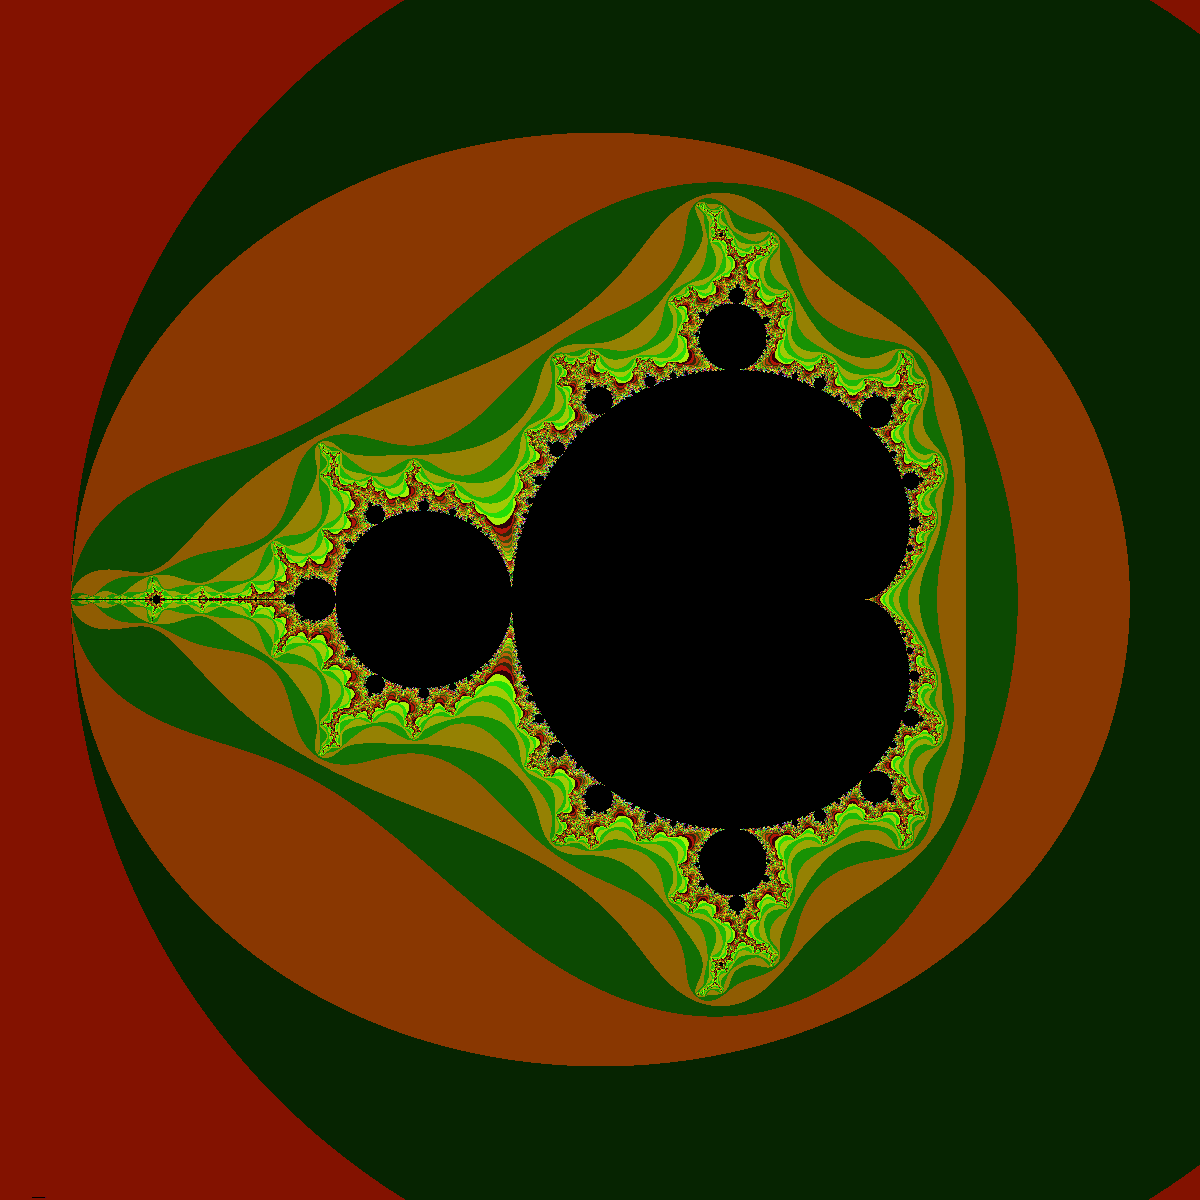 mandelbrot_piece_full